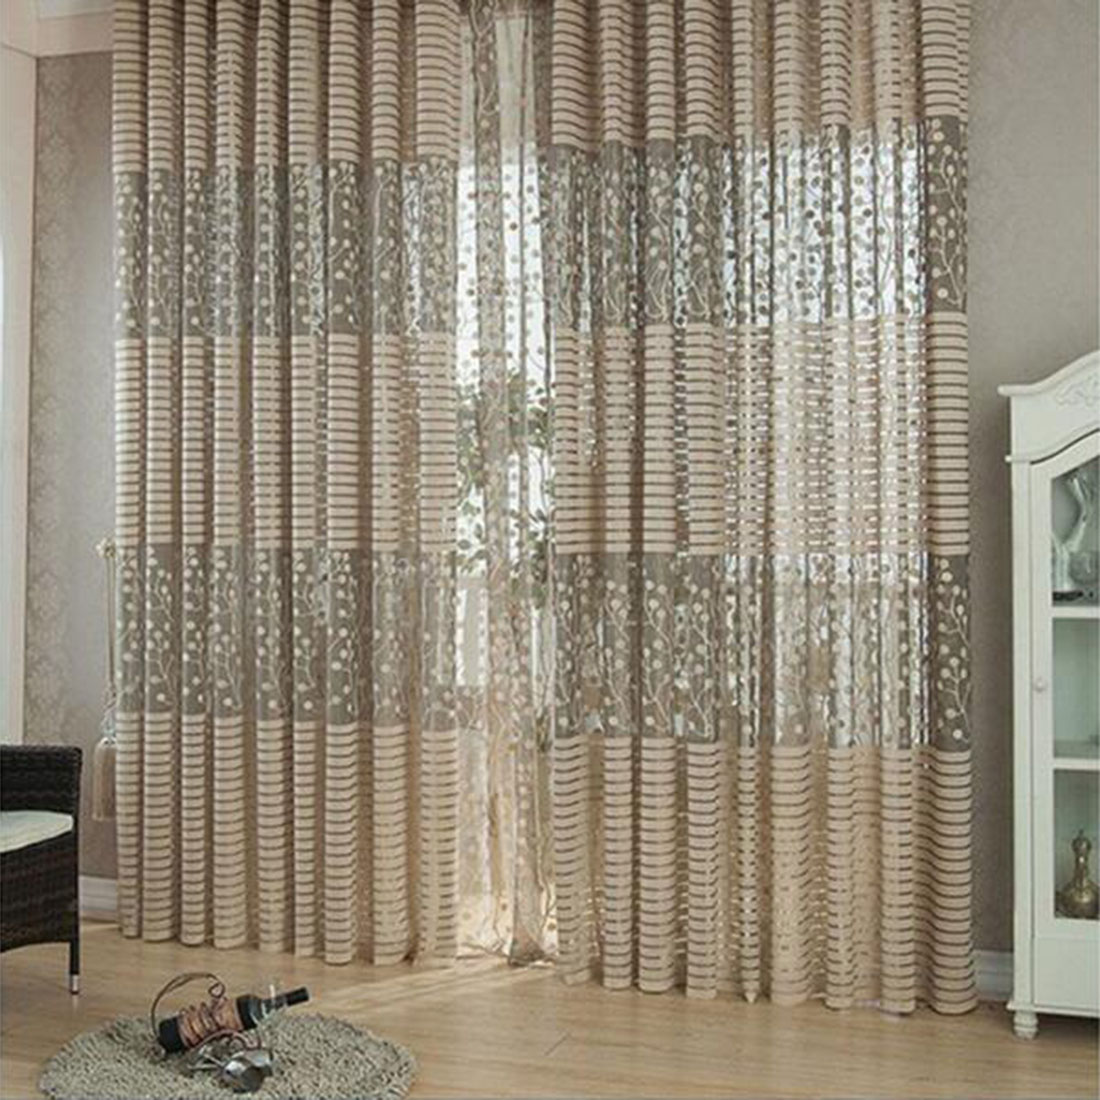 Finished Window Screening Tulle Modern Sheer Curtains For